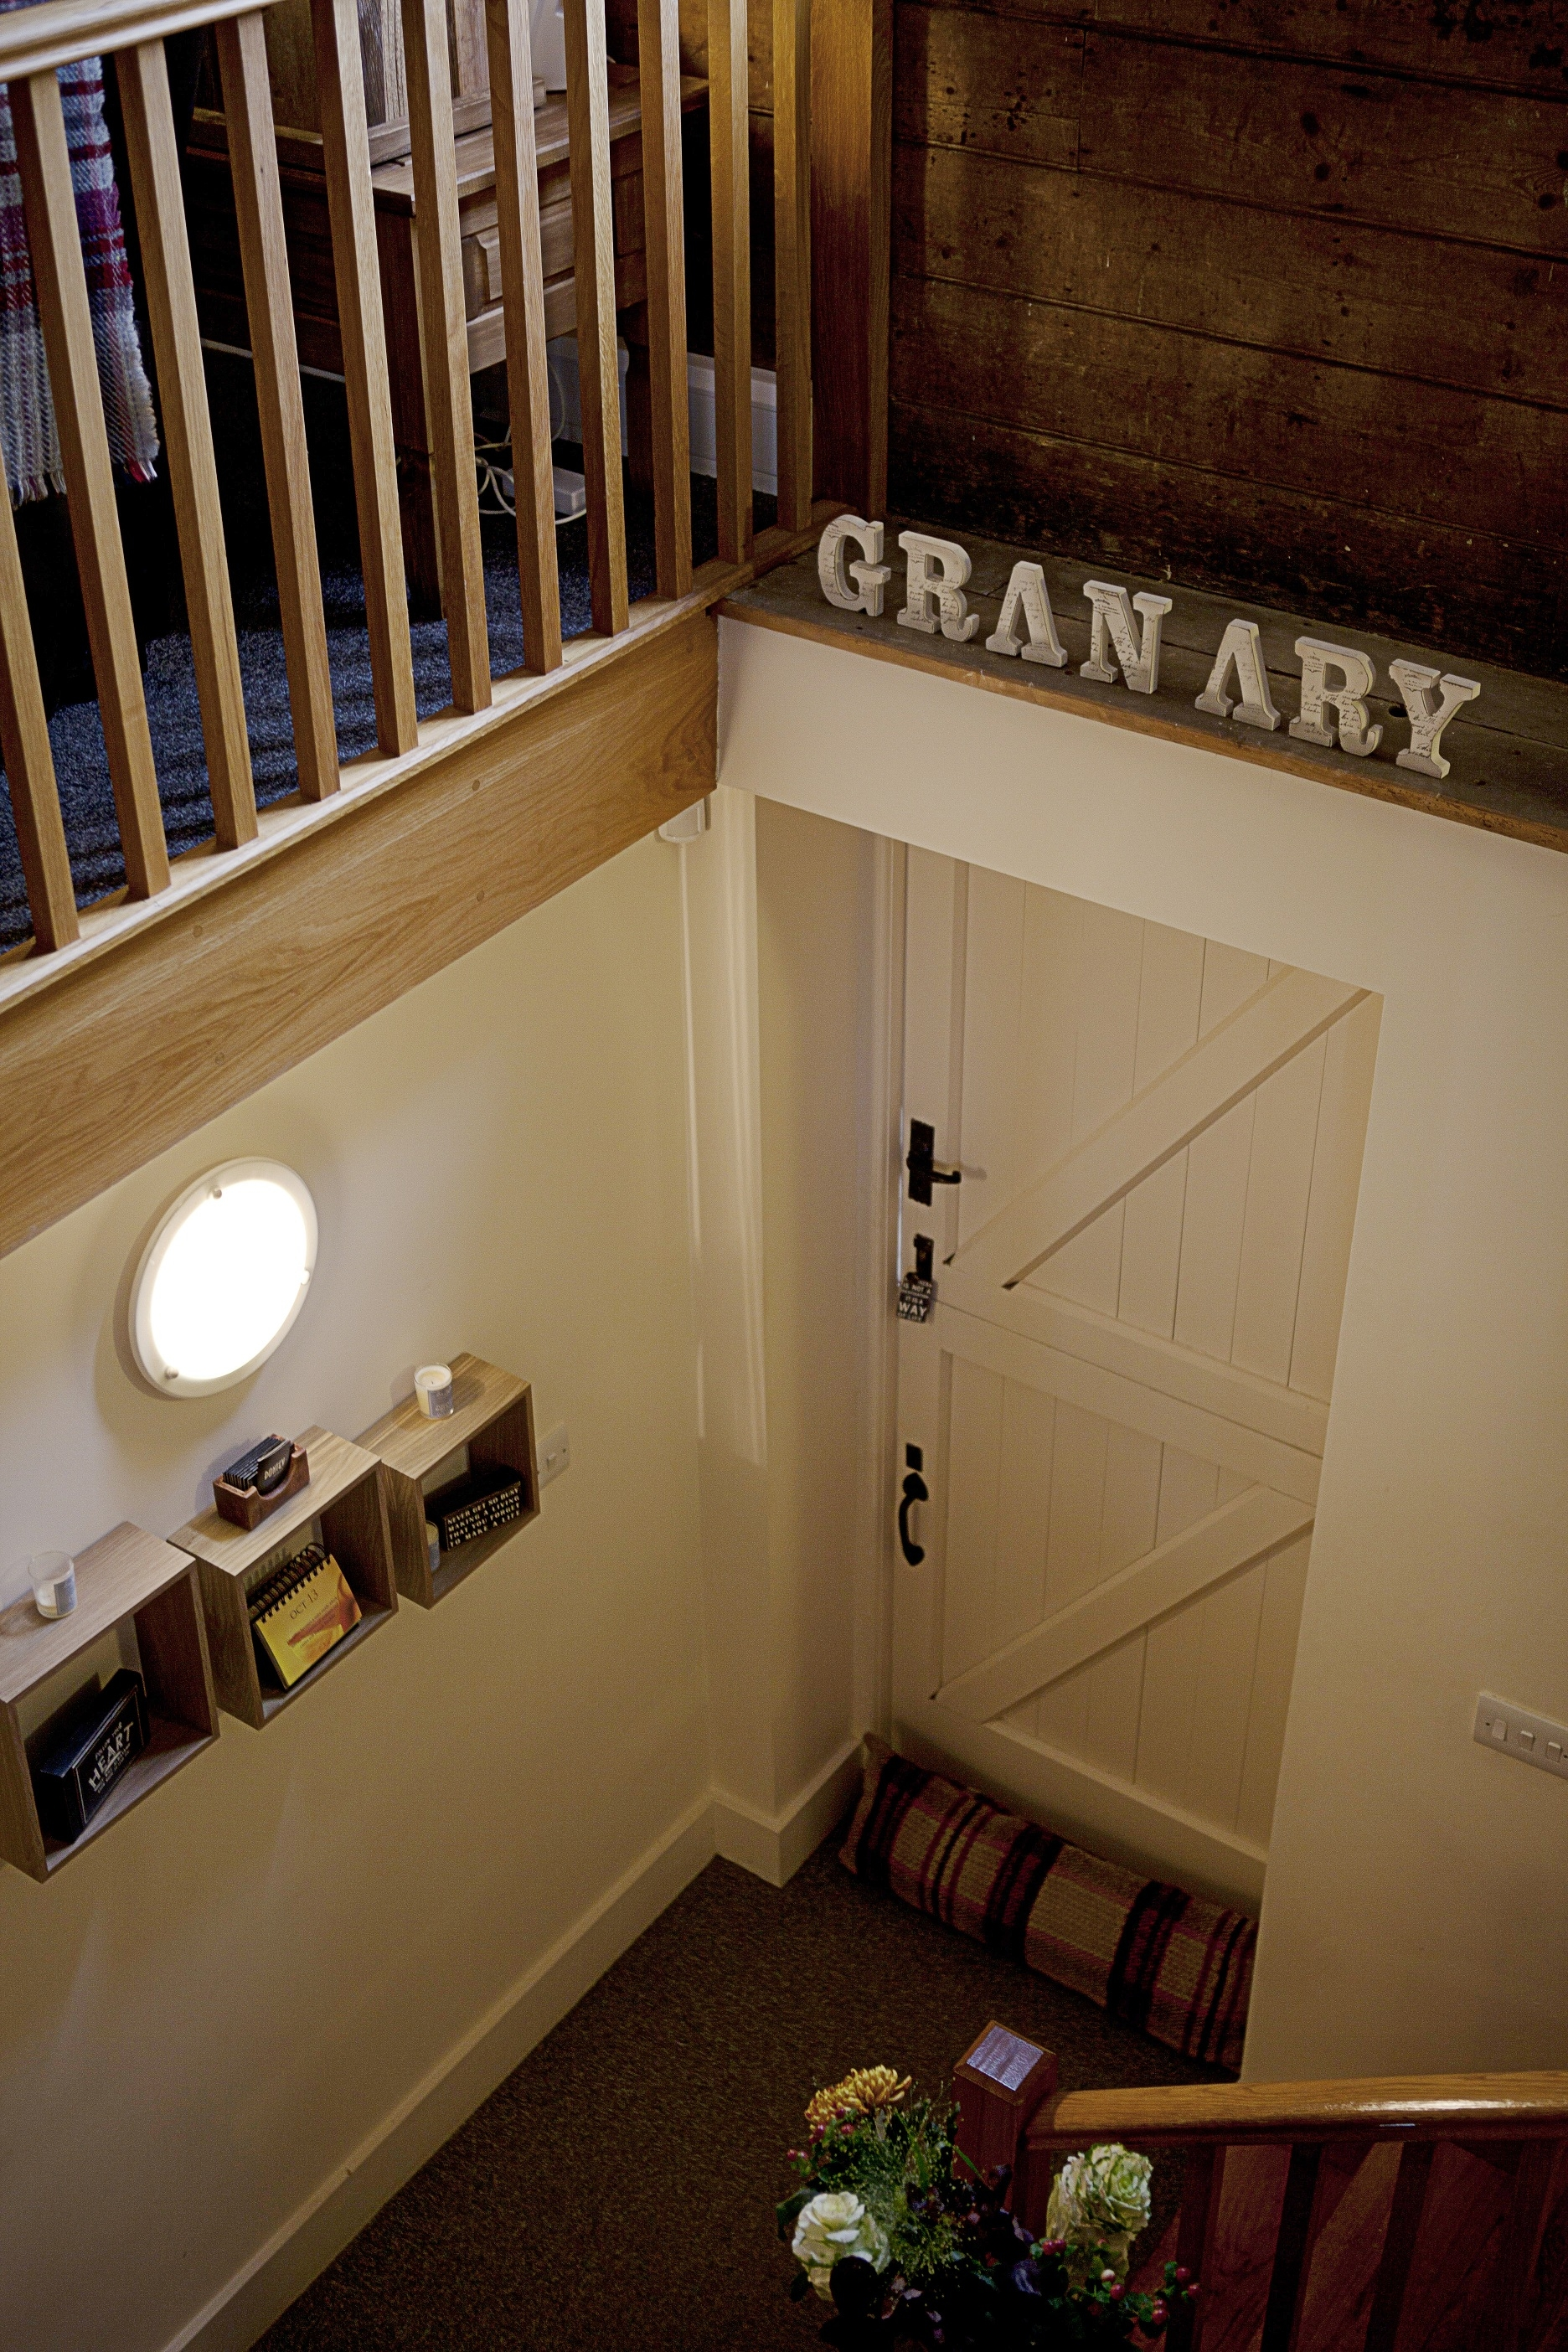 Stairs at The Granary Spa